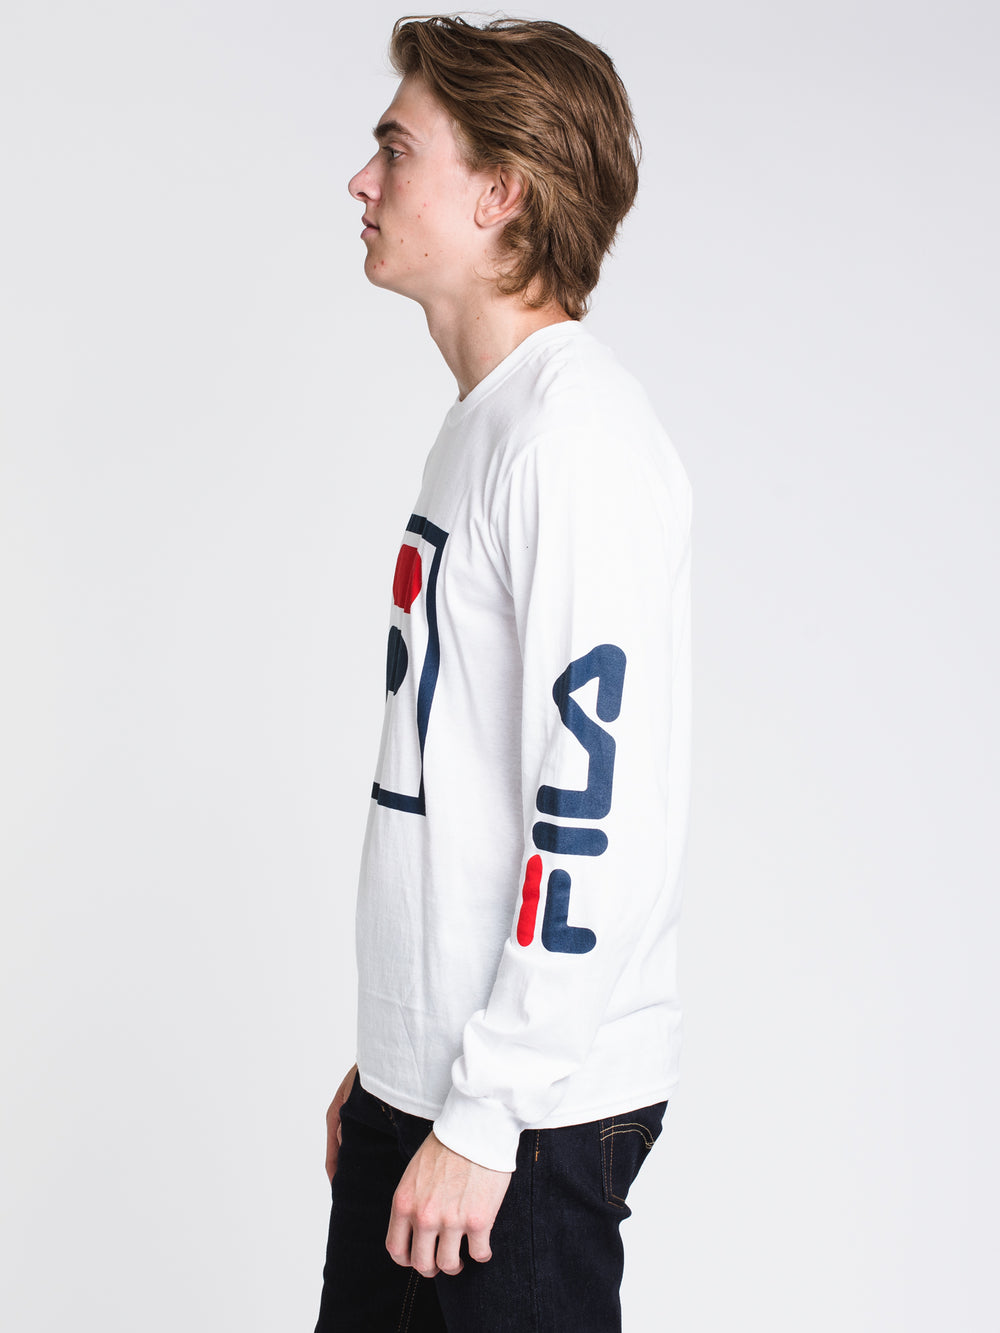 MENS CHEZ LONG SLEEVET-SHIRT- WHITE/NAVY/RED